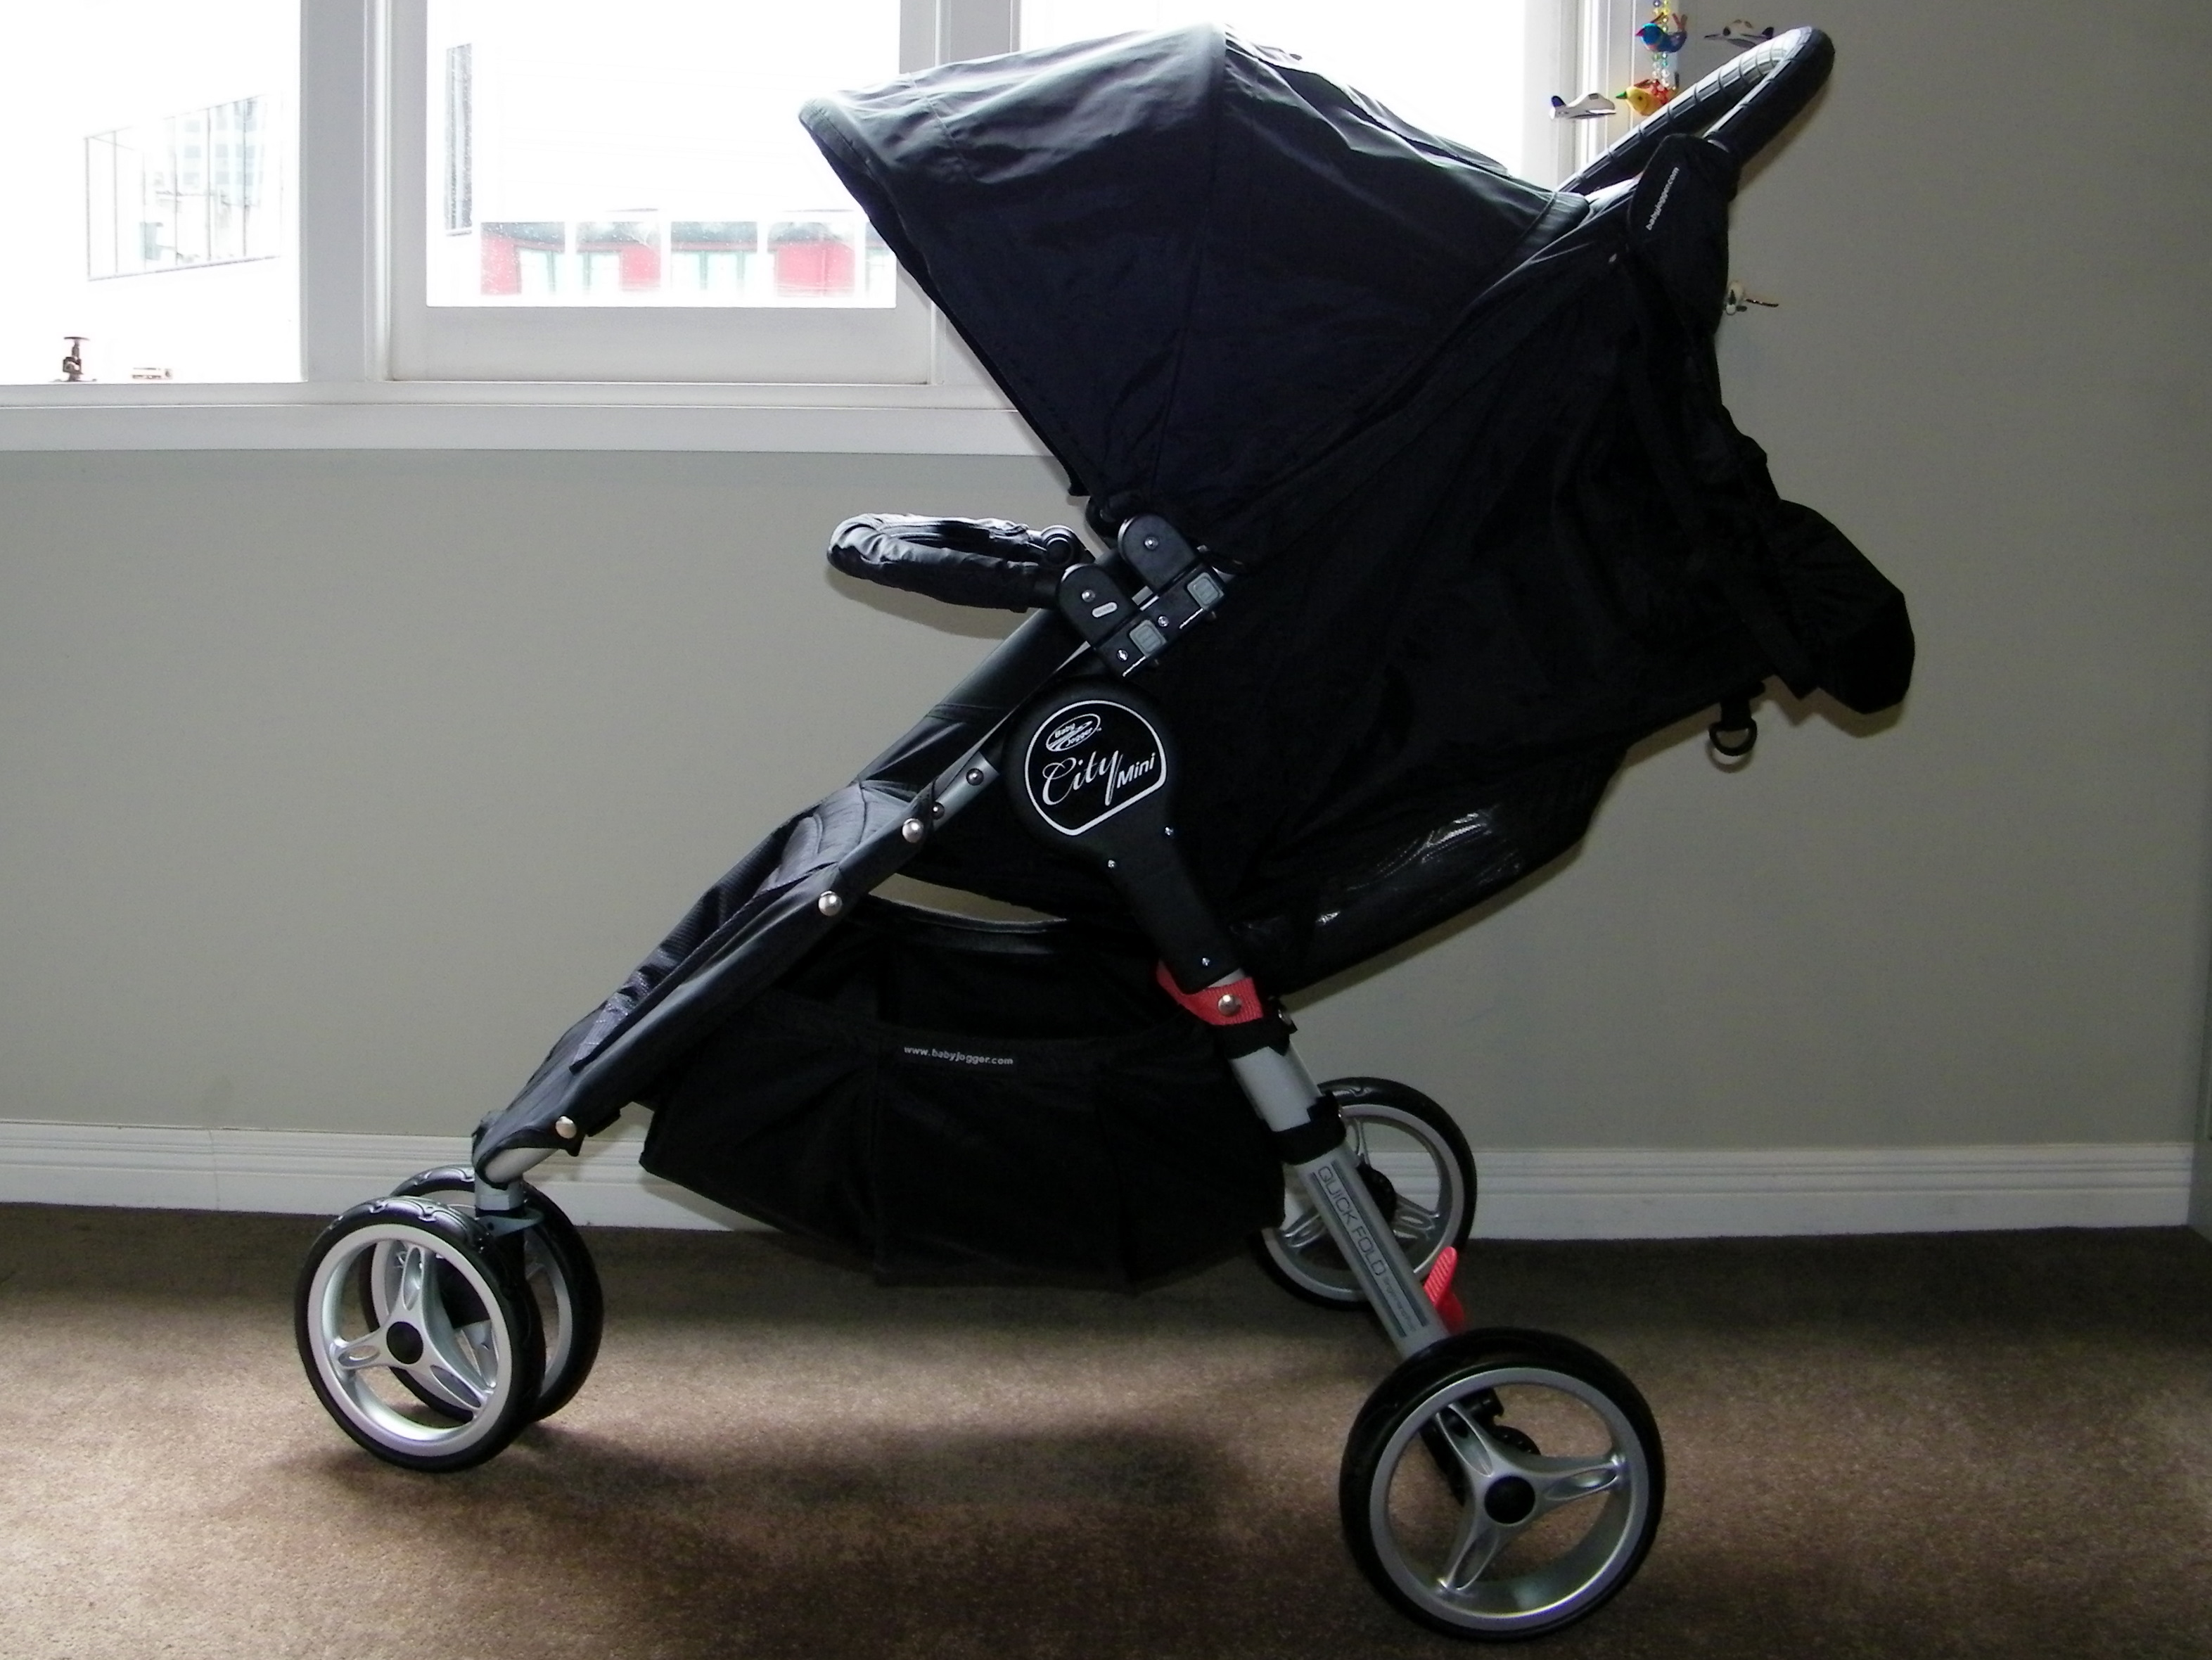 The Stroller Practically Perfect